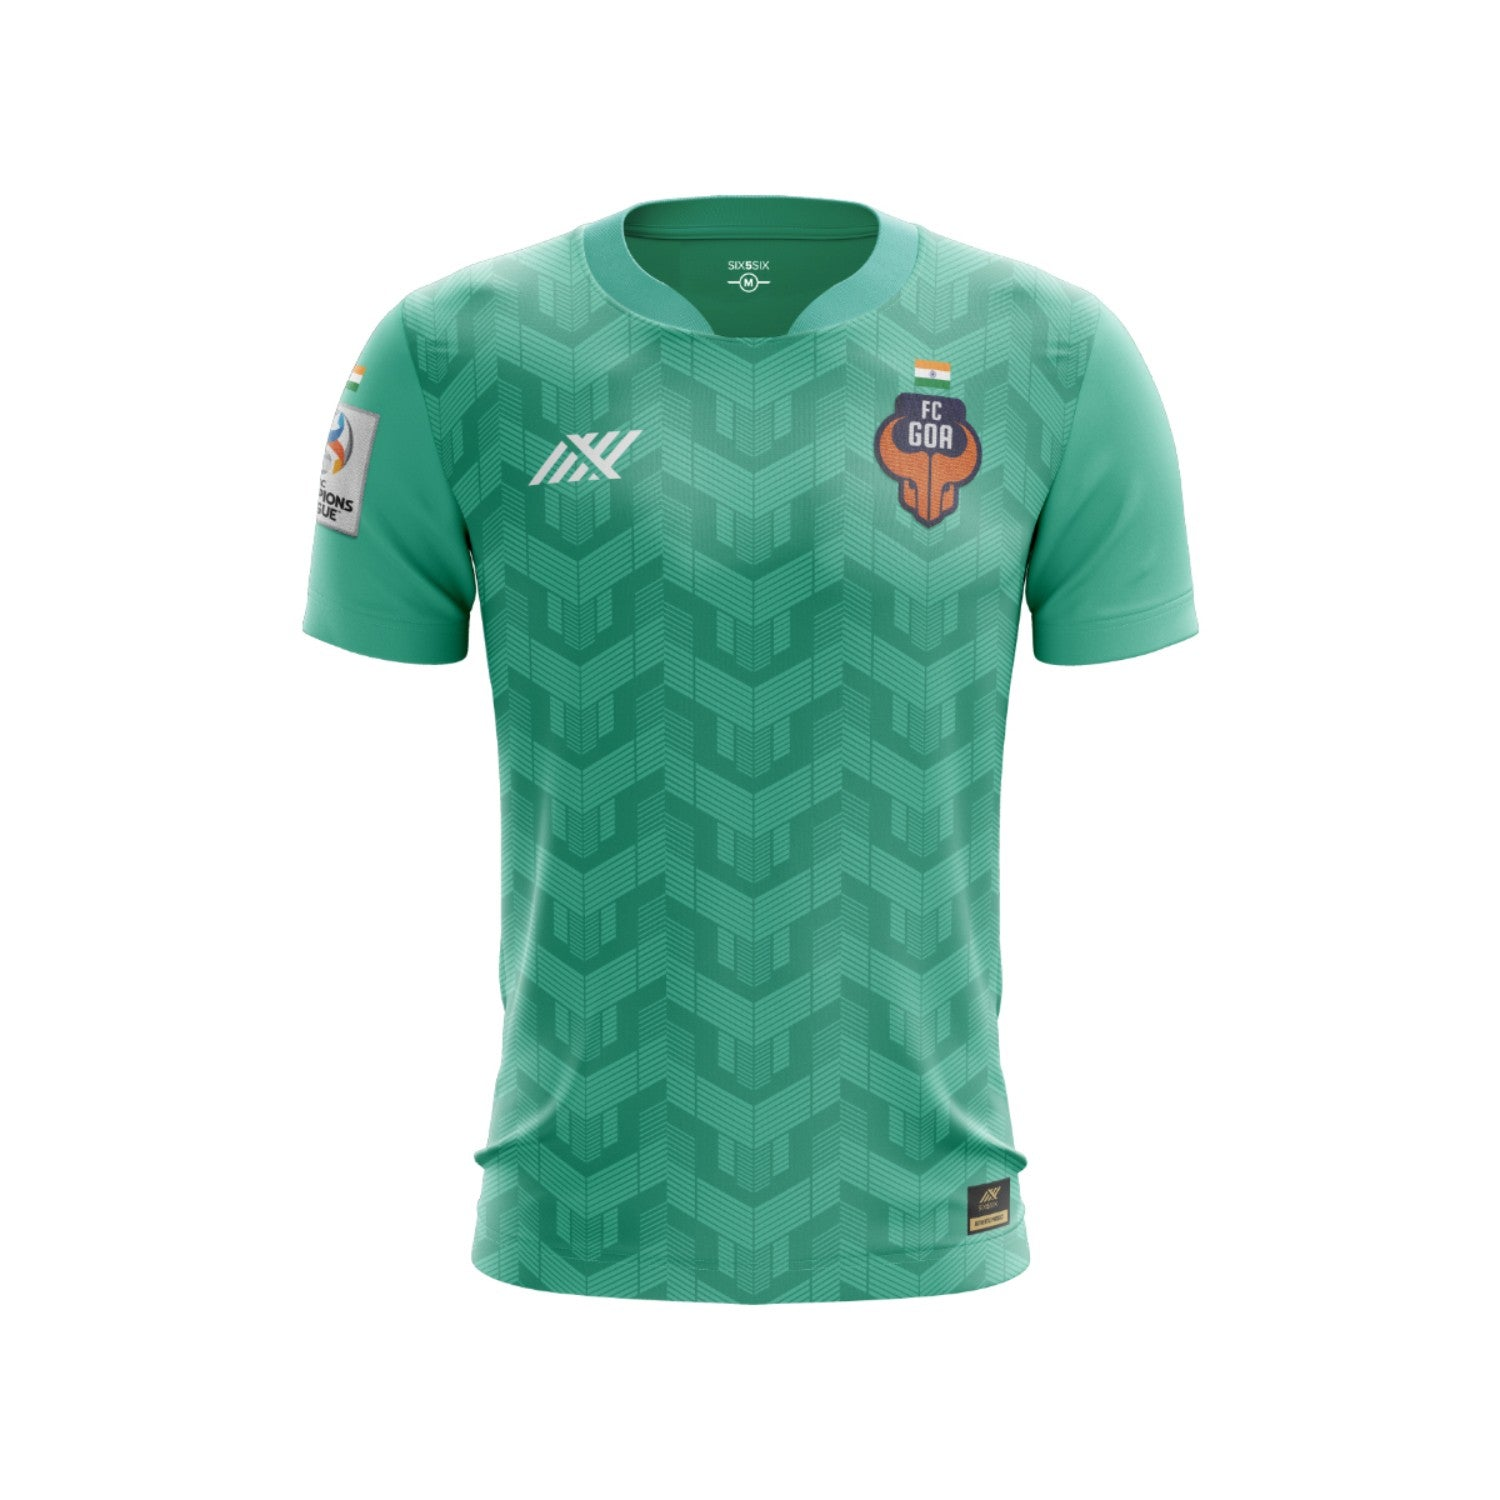 FC Goa Unleashed GK Jersey: Champions League Edition